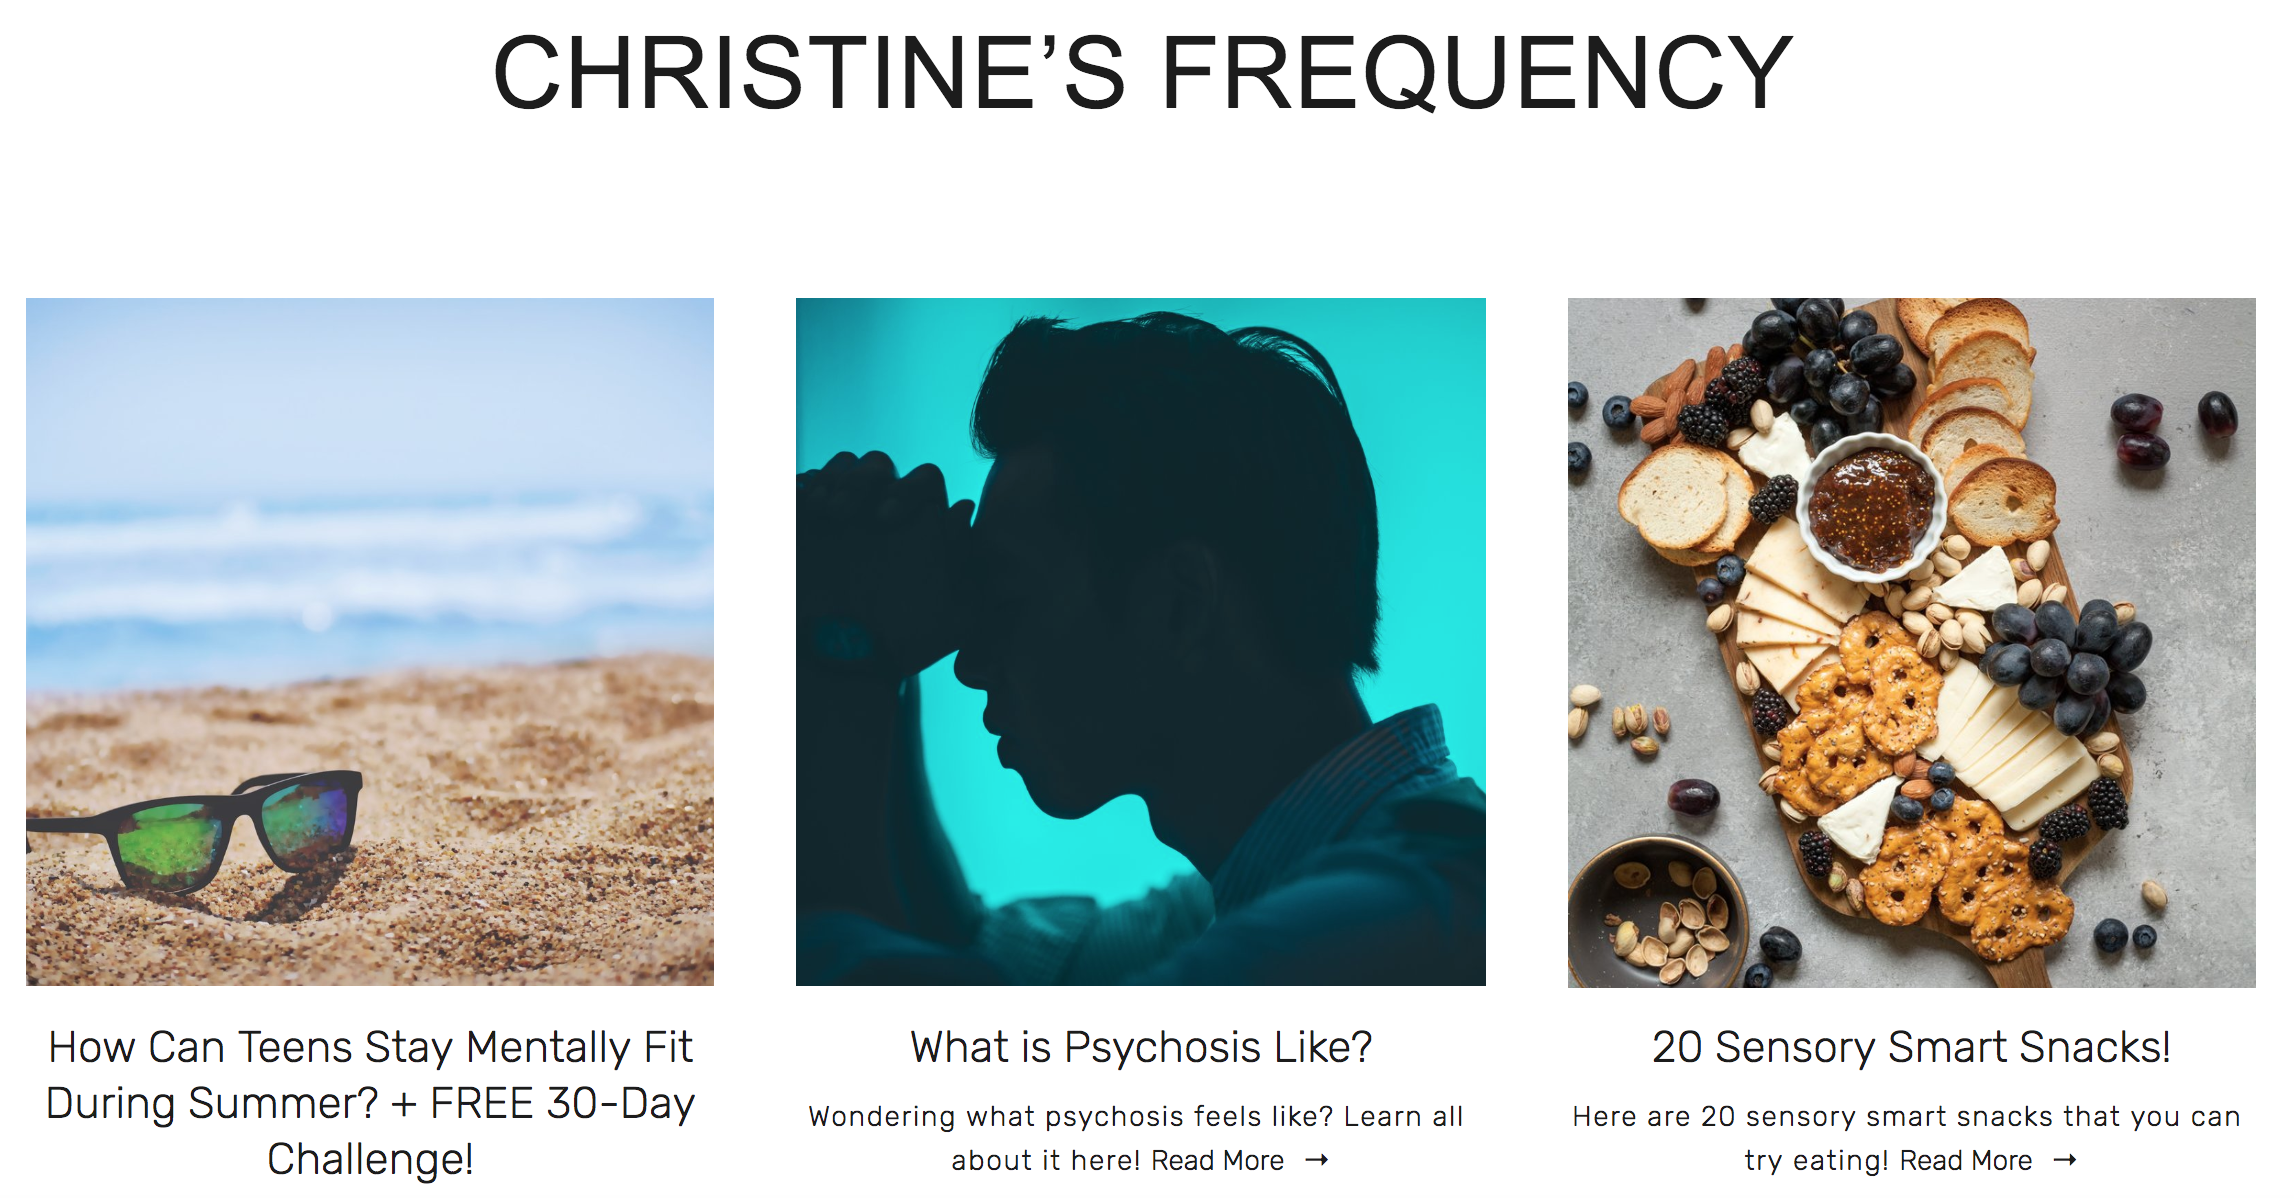 Christine's Frequency - My blog speaks directly to teenagers and offers information on specific challenges teenagers struggle with at school & home.